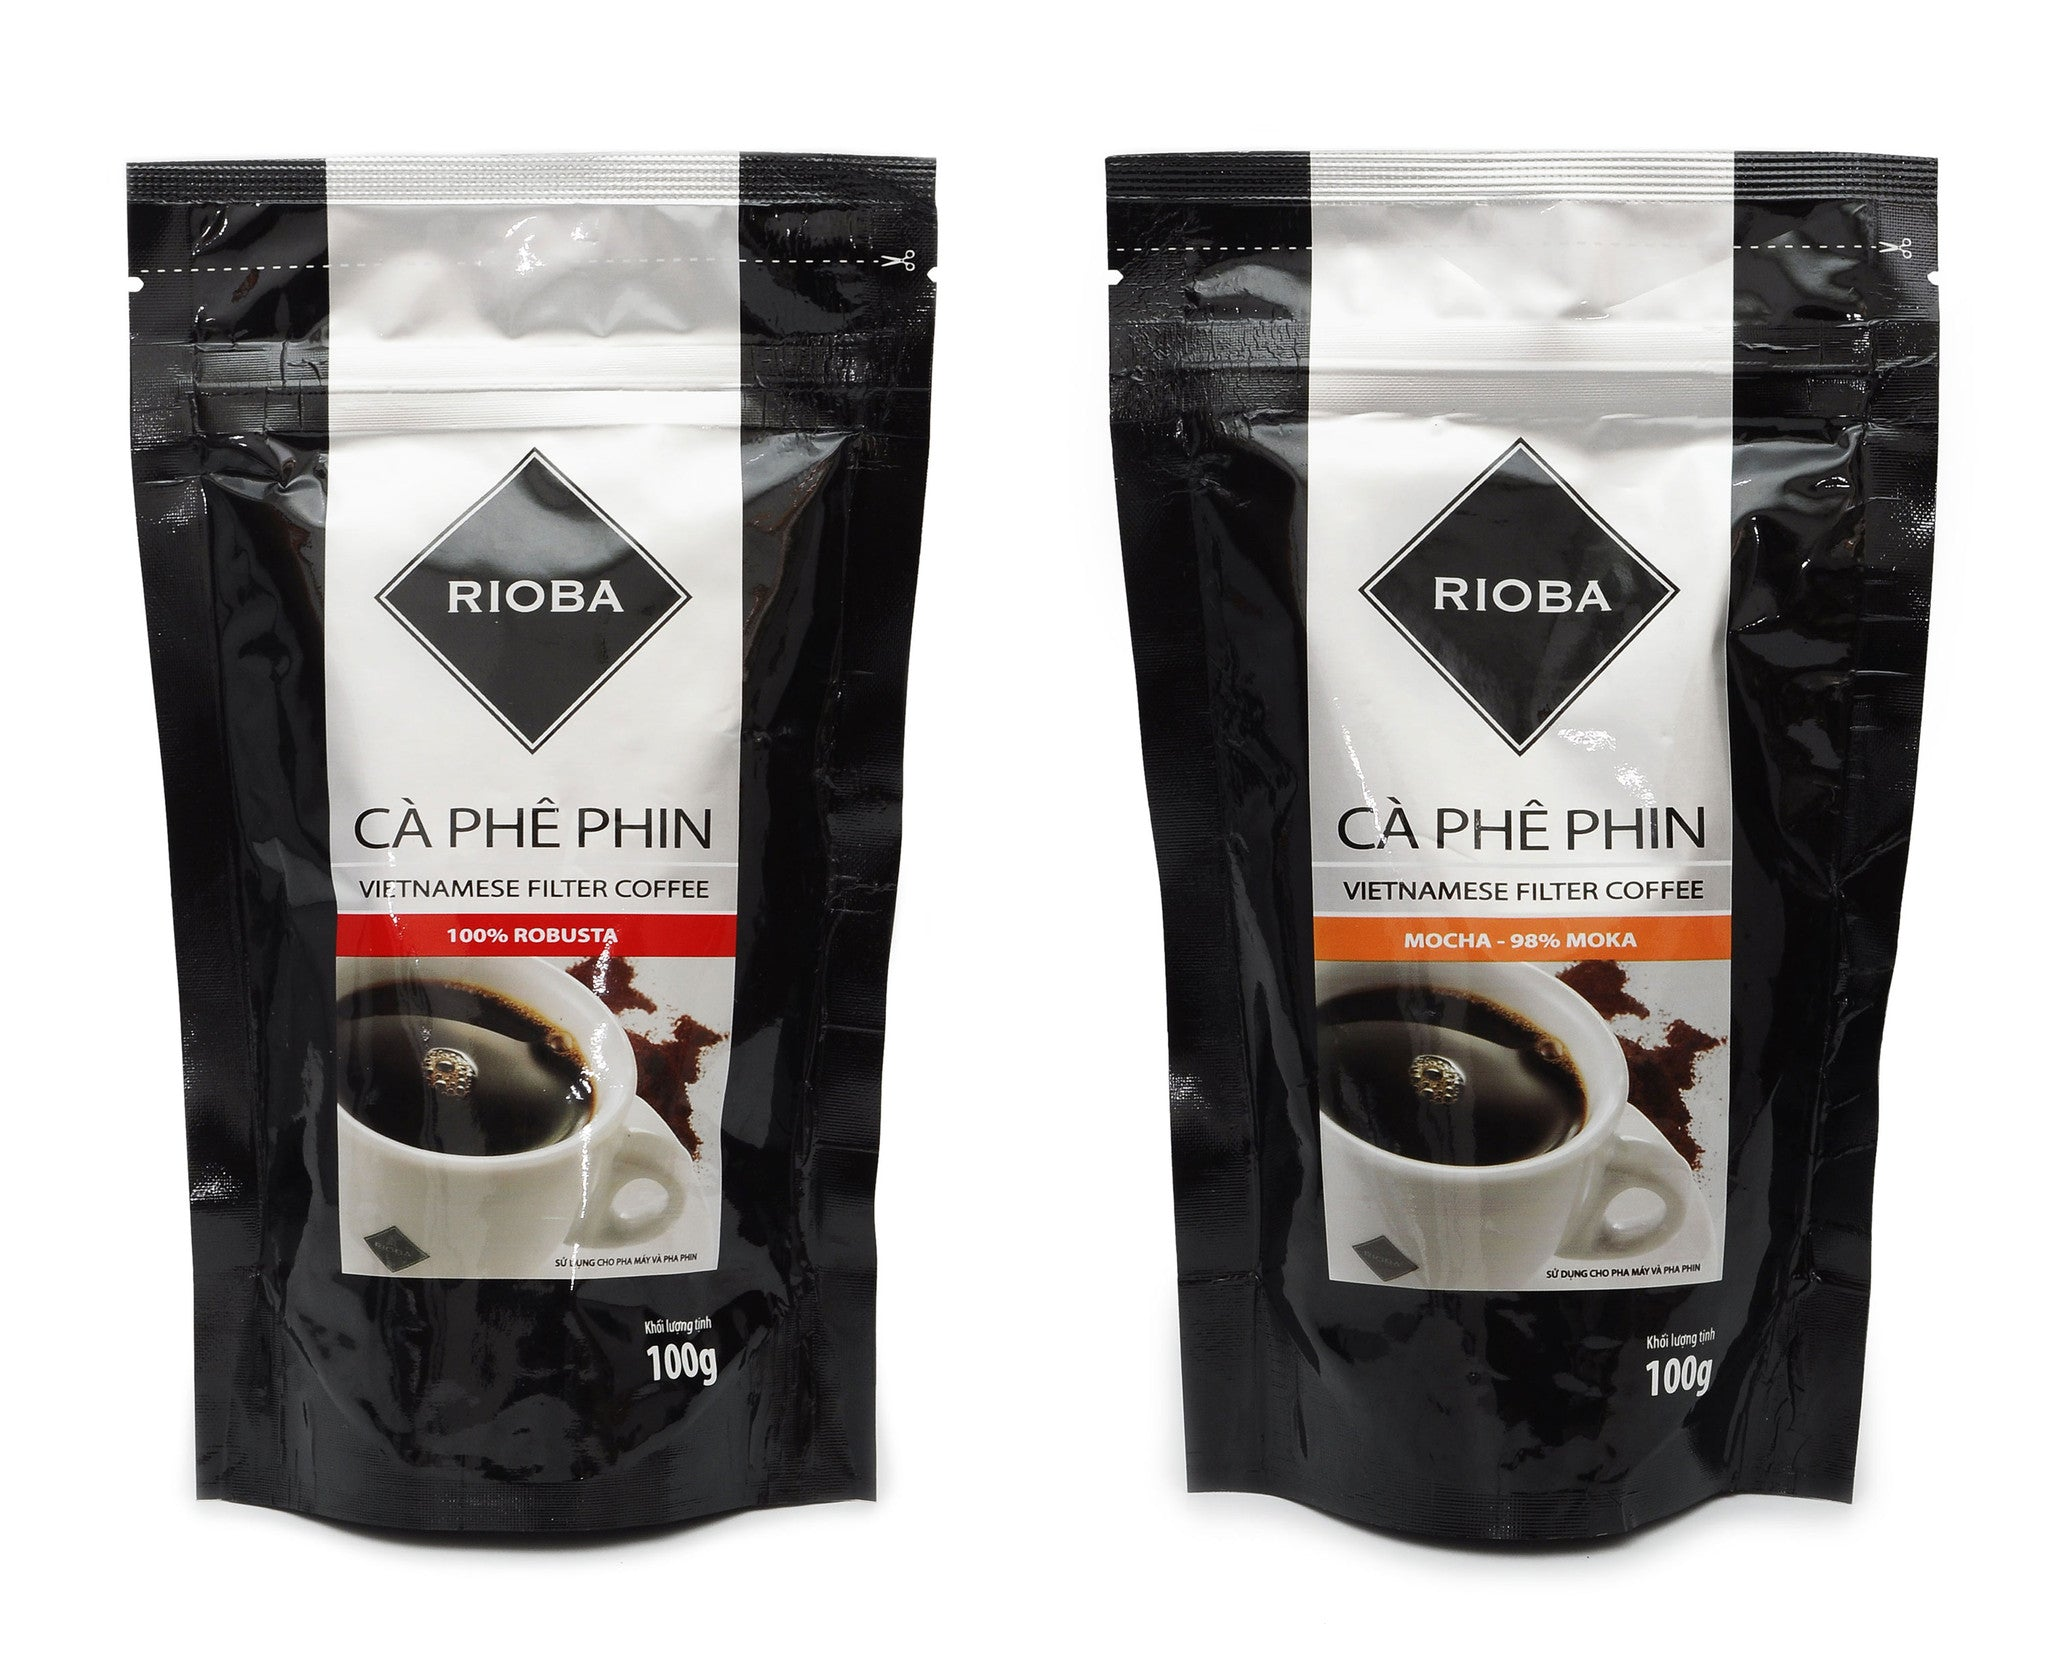 Rioba Vietnamese Filter Coffee – Pure Moka & Robusta Coffee